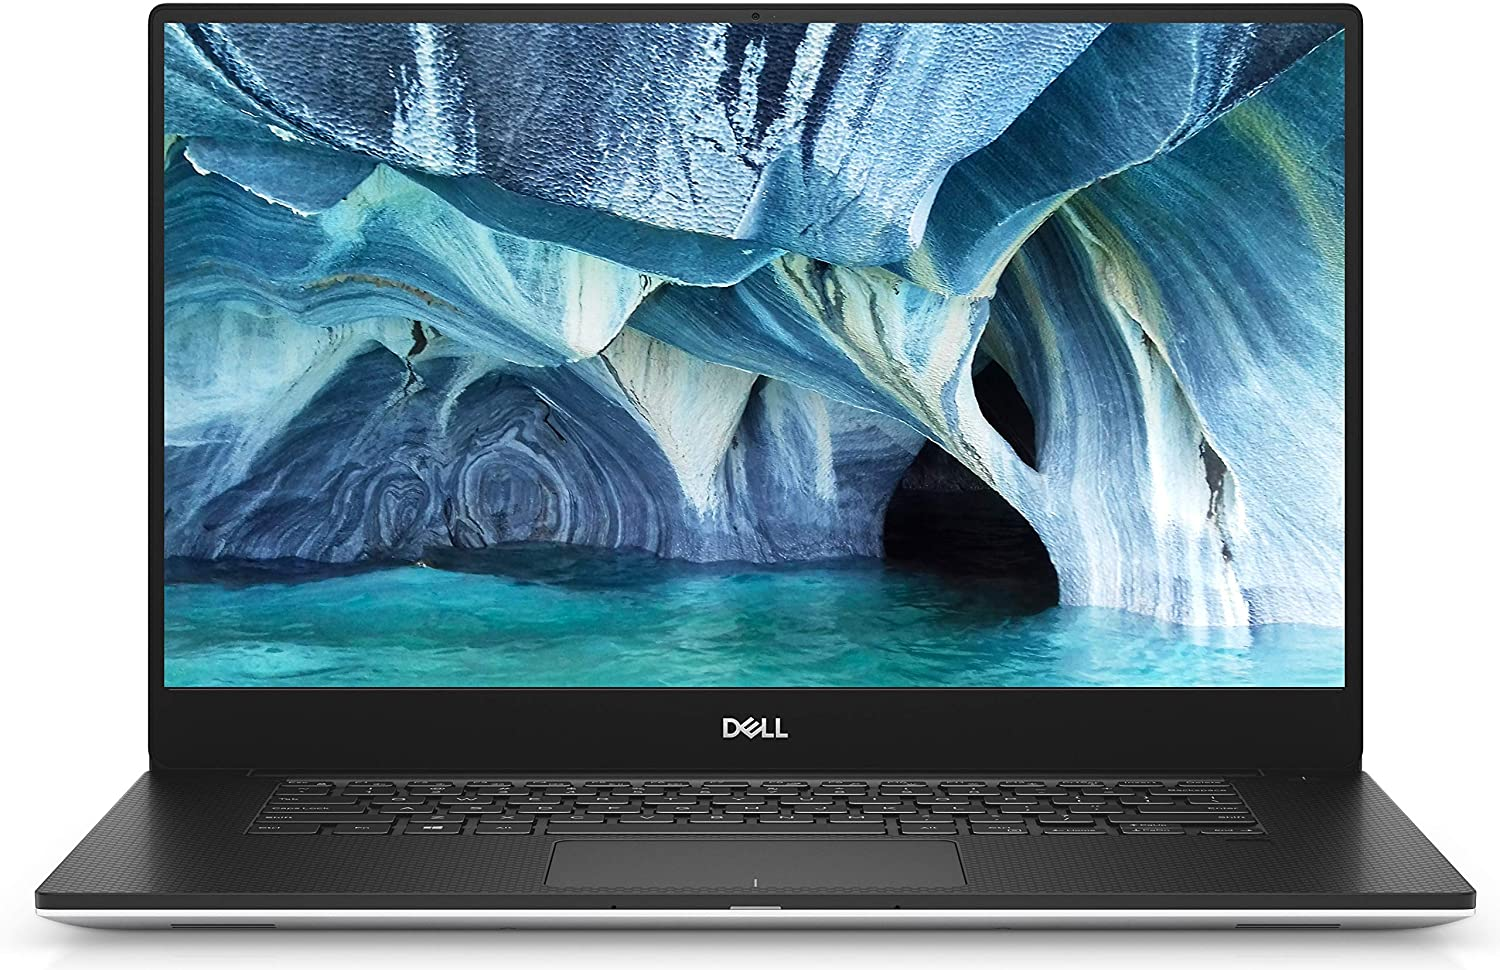 Dell XPS 15 9570 Laptop 15.6 inch, 4K UHD InfinityEdge Touch, 8th Gen Intel Core i7-8750H, NVIDIA Geforce GTX 1050Ti GDDR5, 5256GB SSD,16GB RAM, Windows 10 Home, XPS9570-7035SLV-PUS